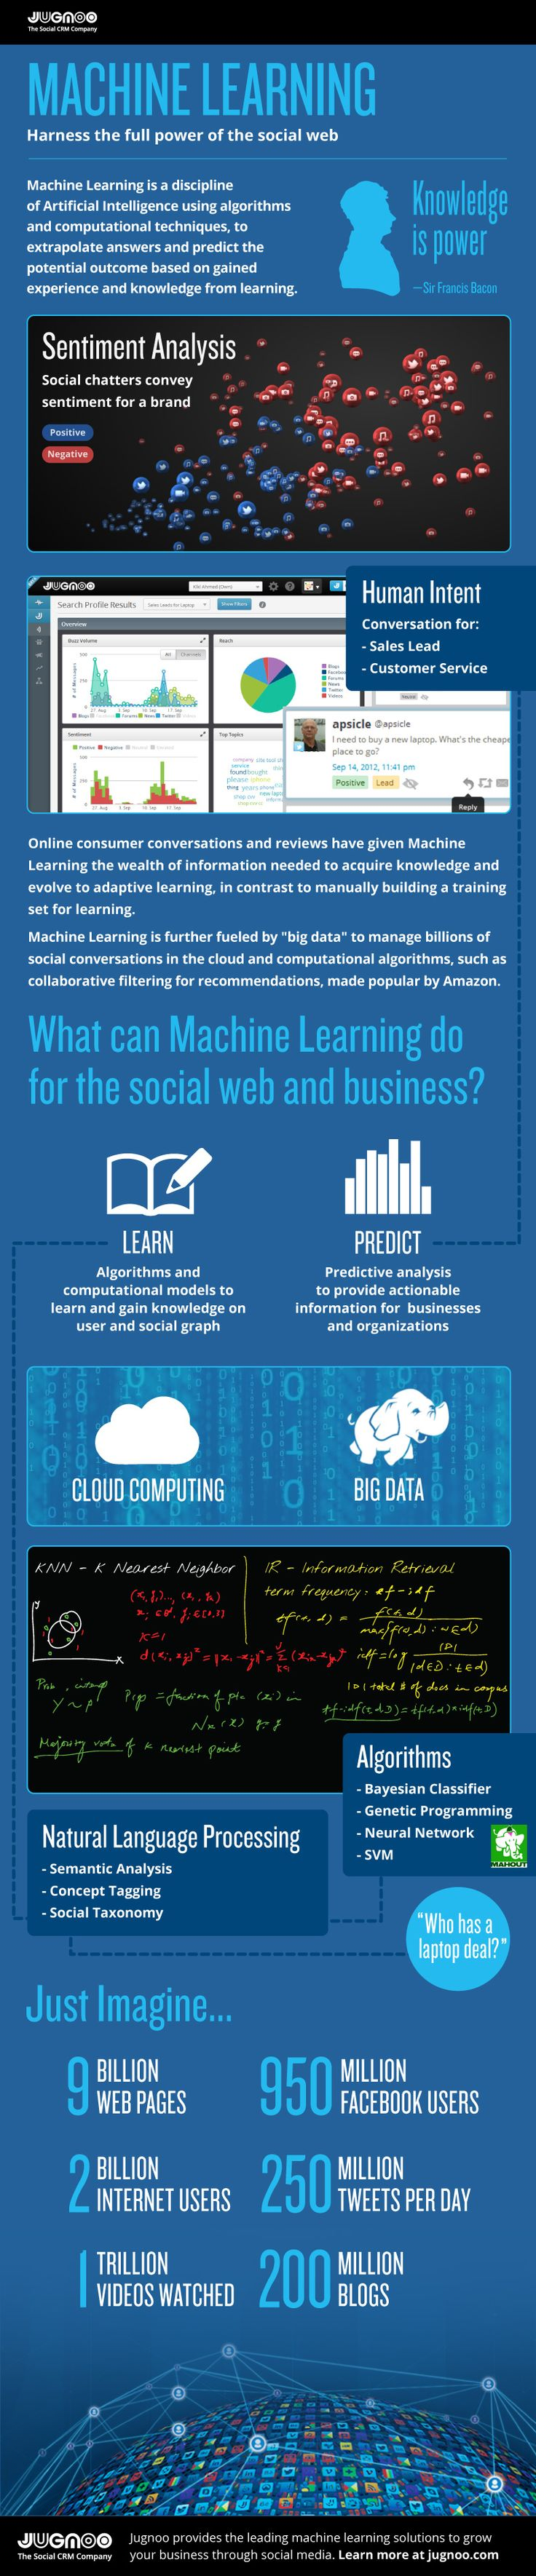 Machine learning #infographic